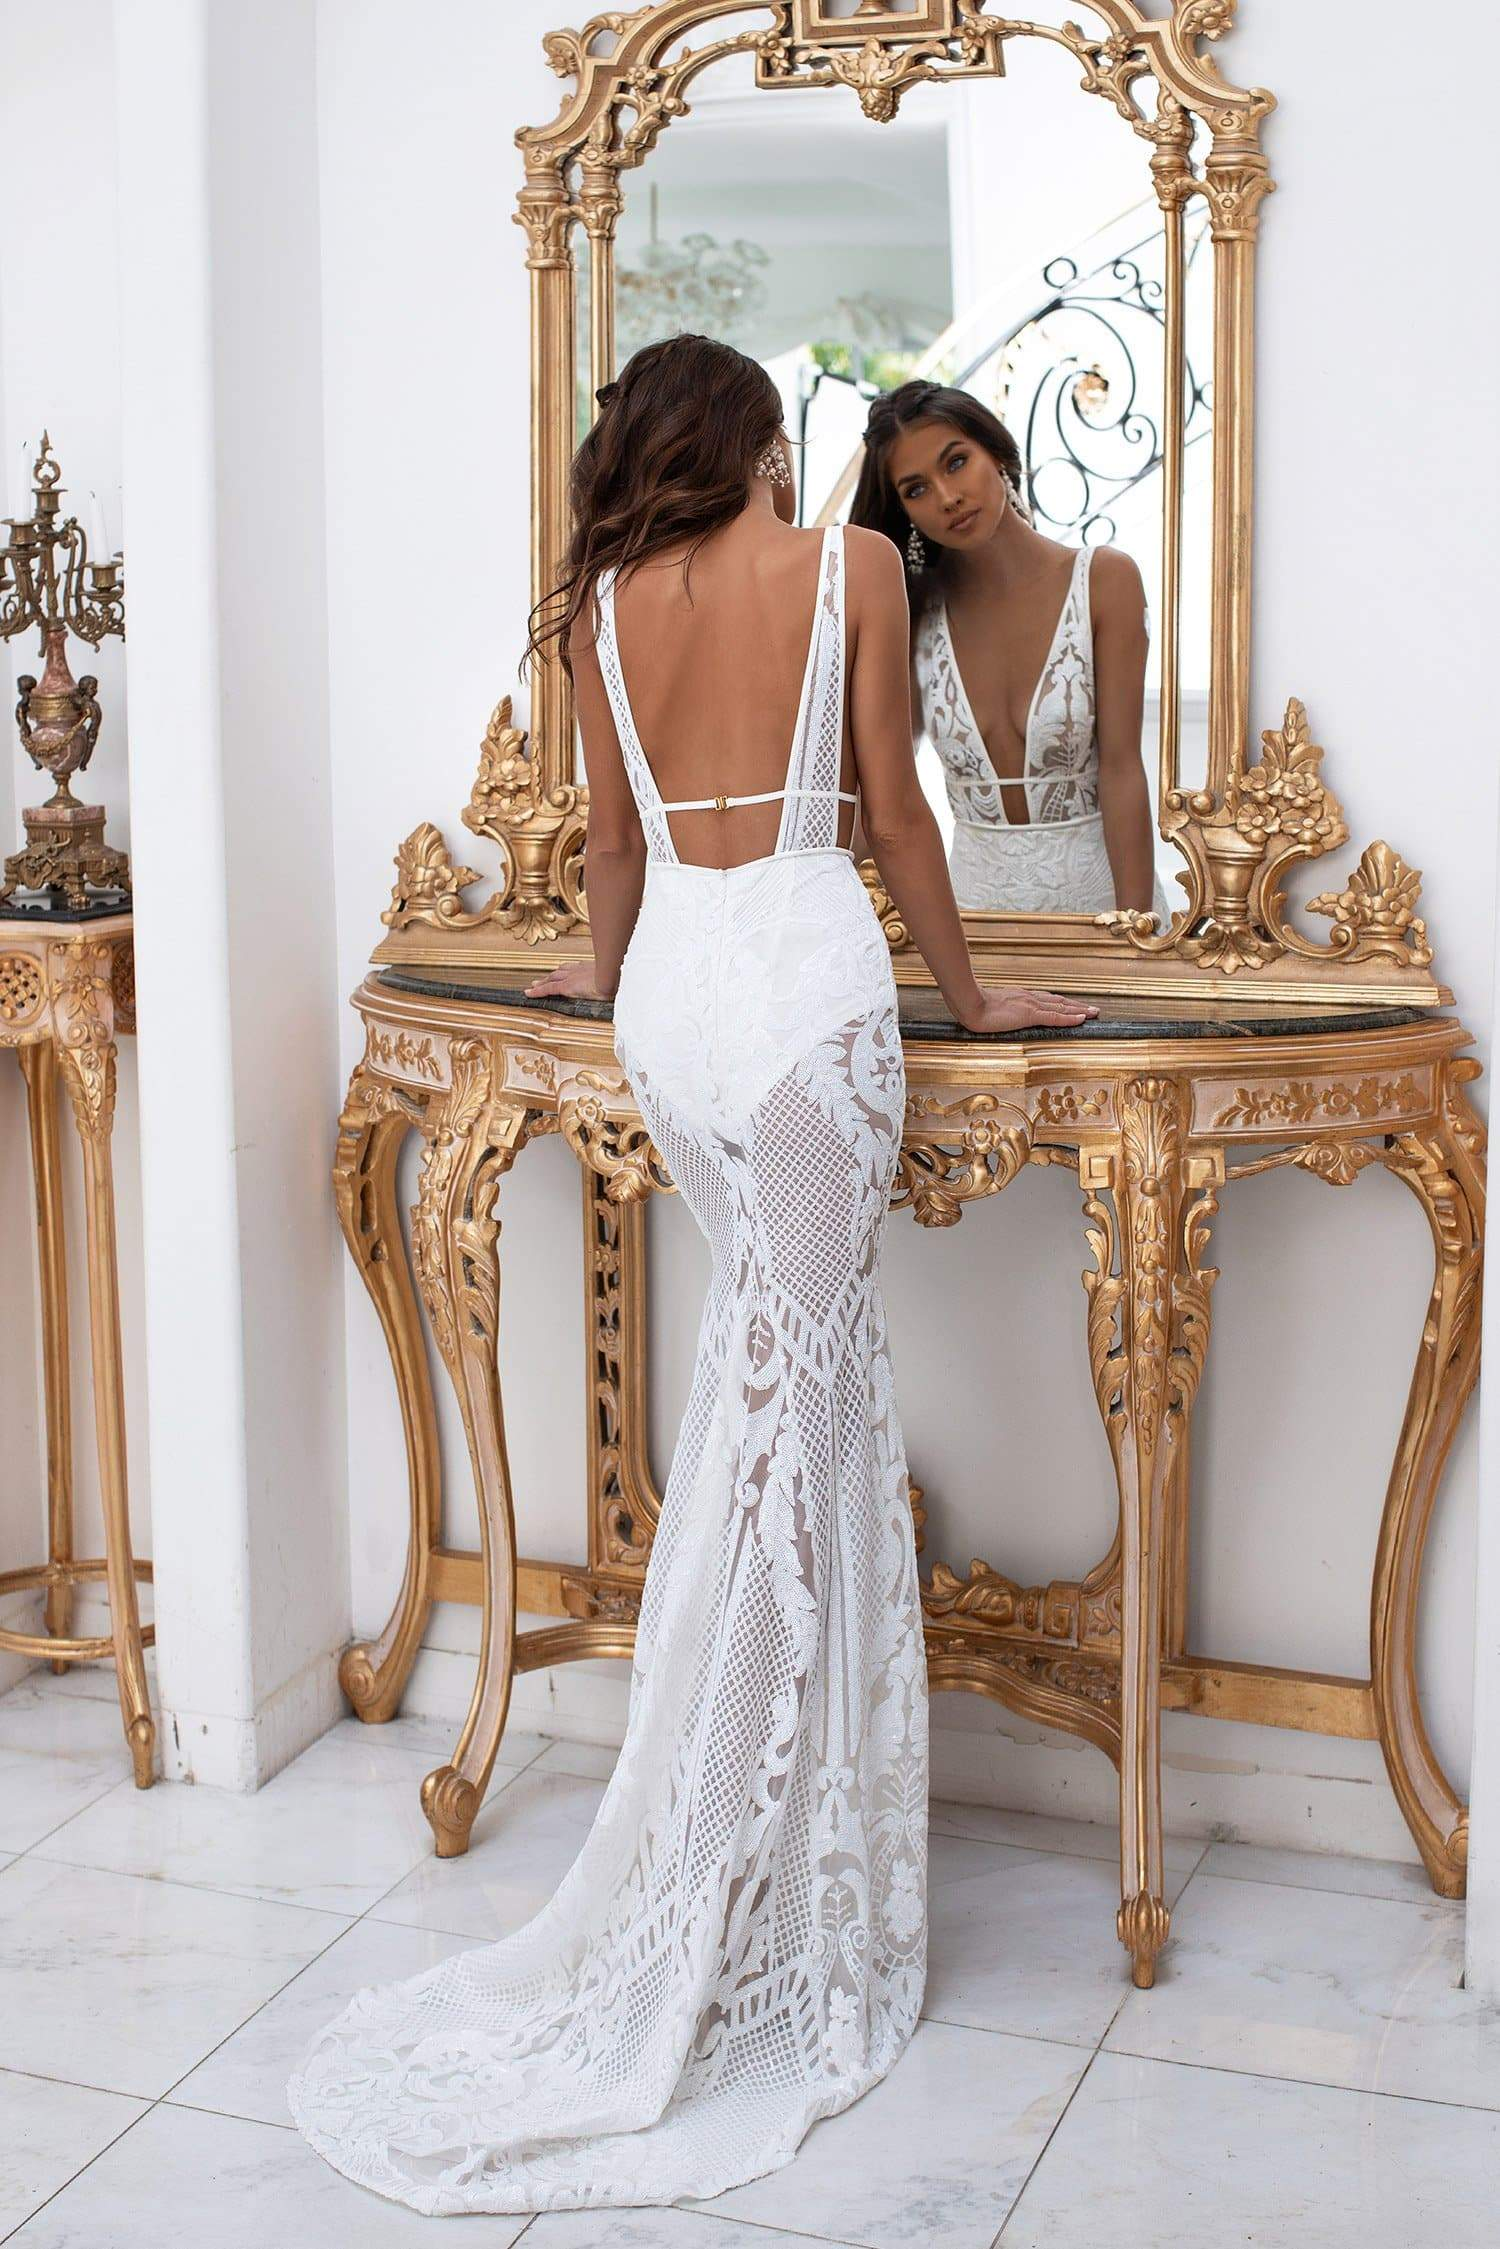 Elyse - White Patterned Sequins Gown with Plunge Neck & Open Back